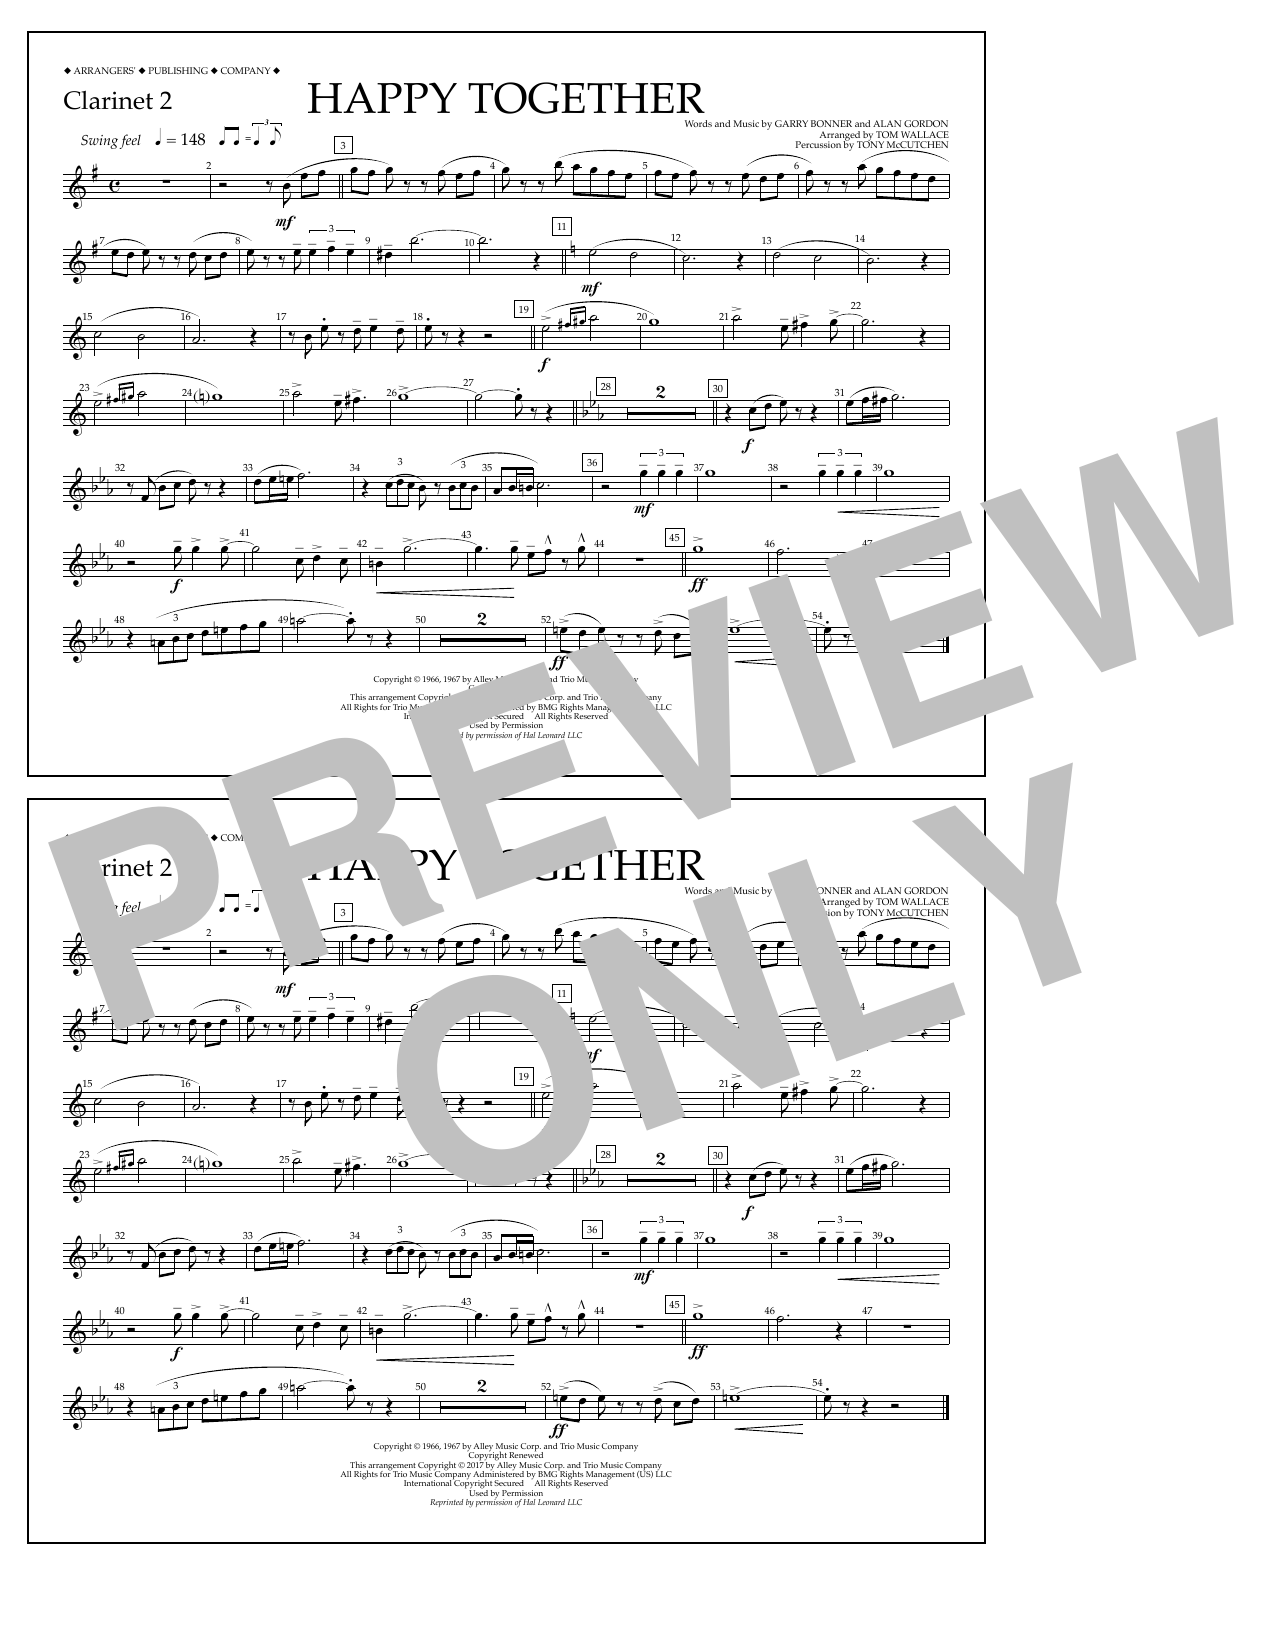 Happy Together - Clarinet 2 Sheet Music